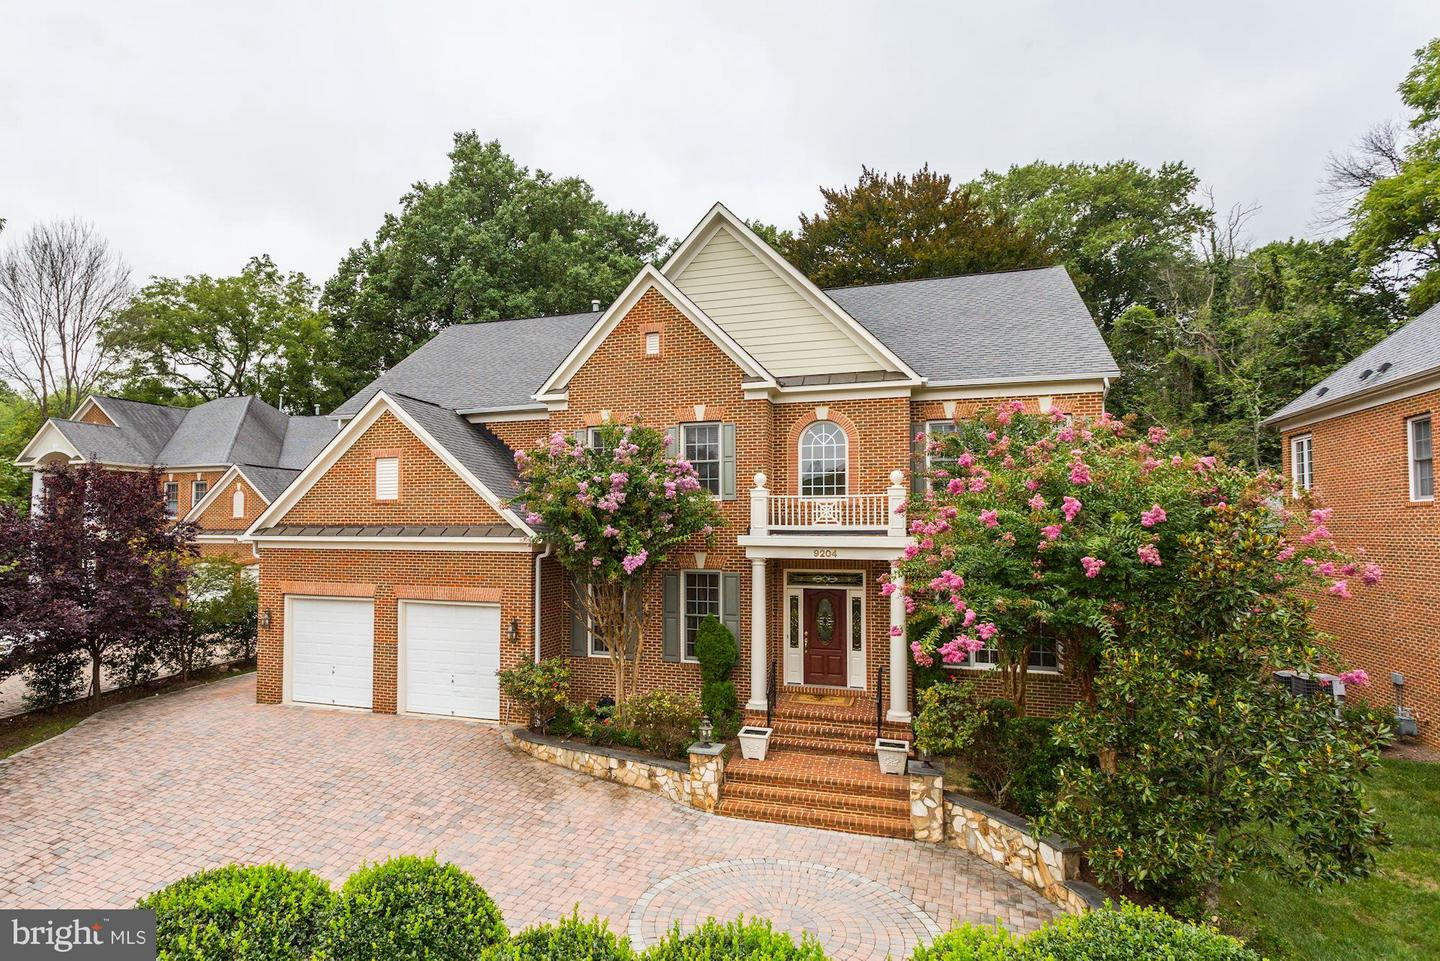 9204 JONES MILL ROAD, CHEVY CHASE, Maryland